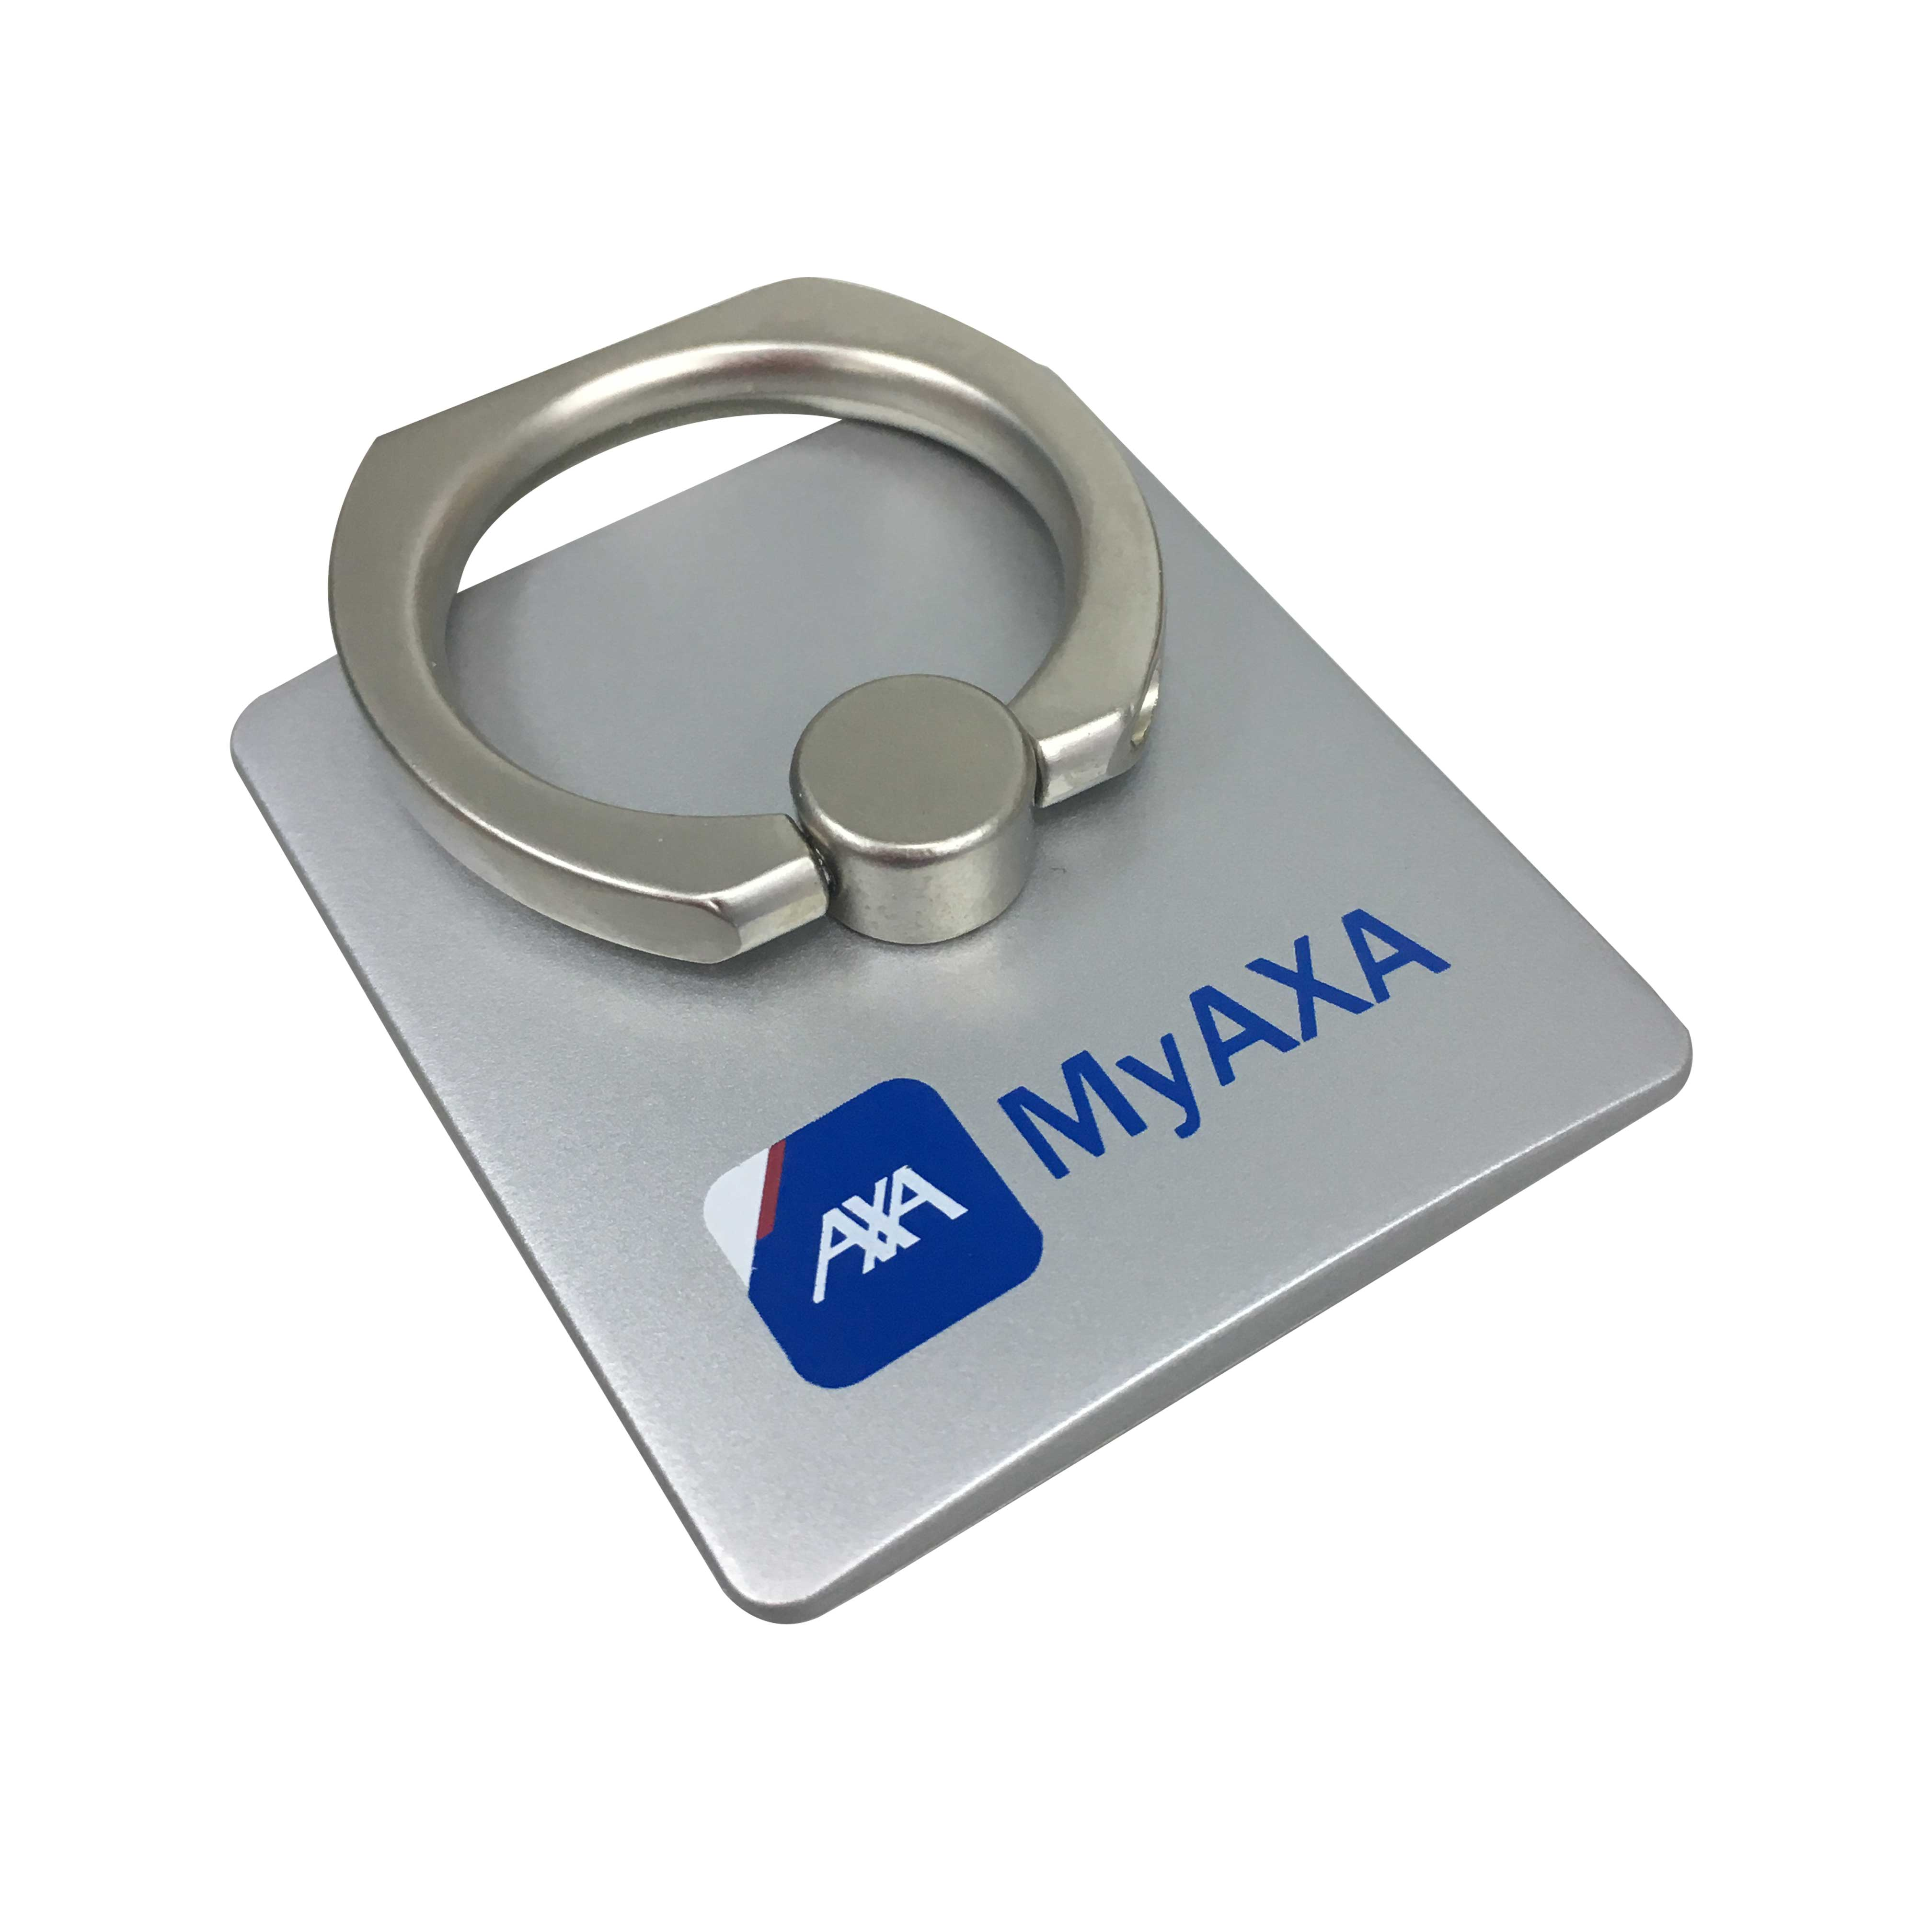 Personalized - Mobile Phone Key Ring